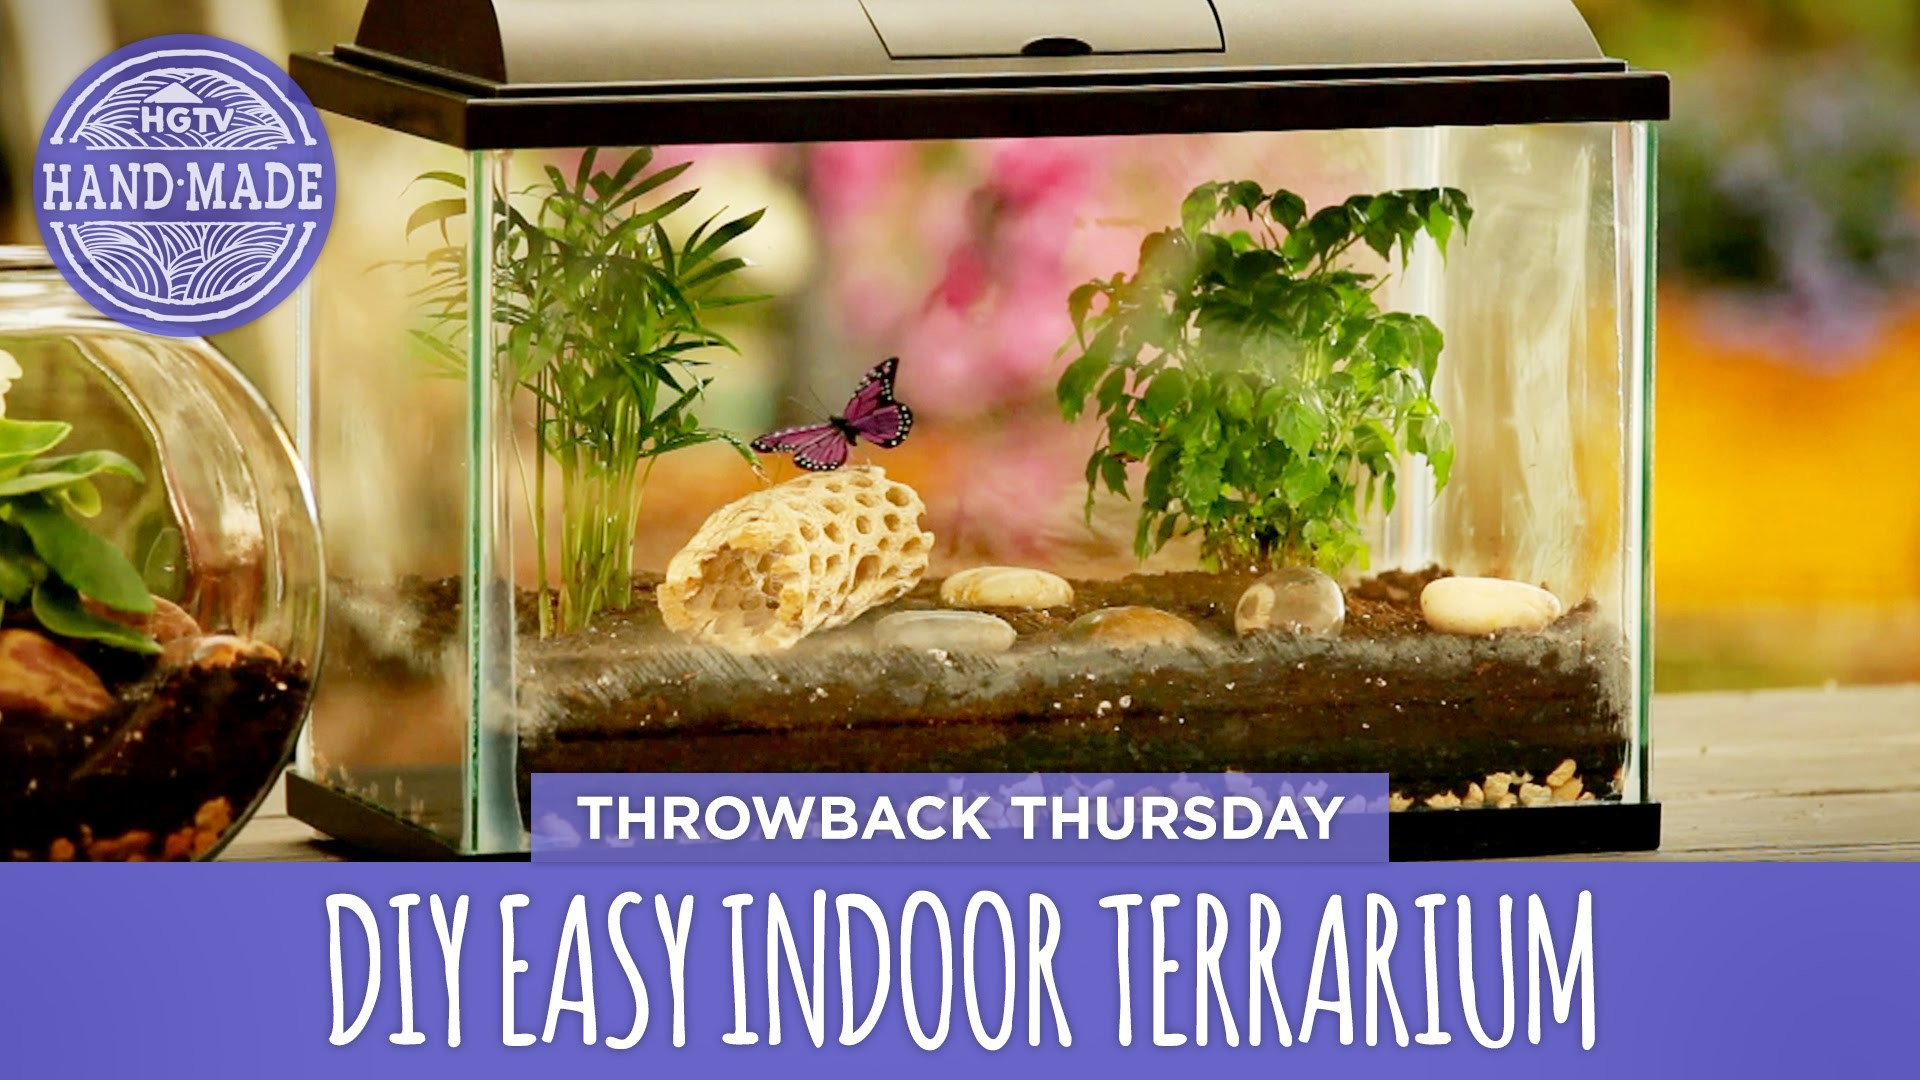 DIY Easy Indoor Terrarium - Throwback Thursday - HGTV Handmade